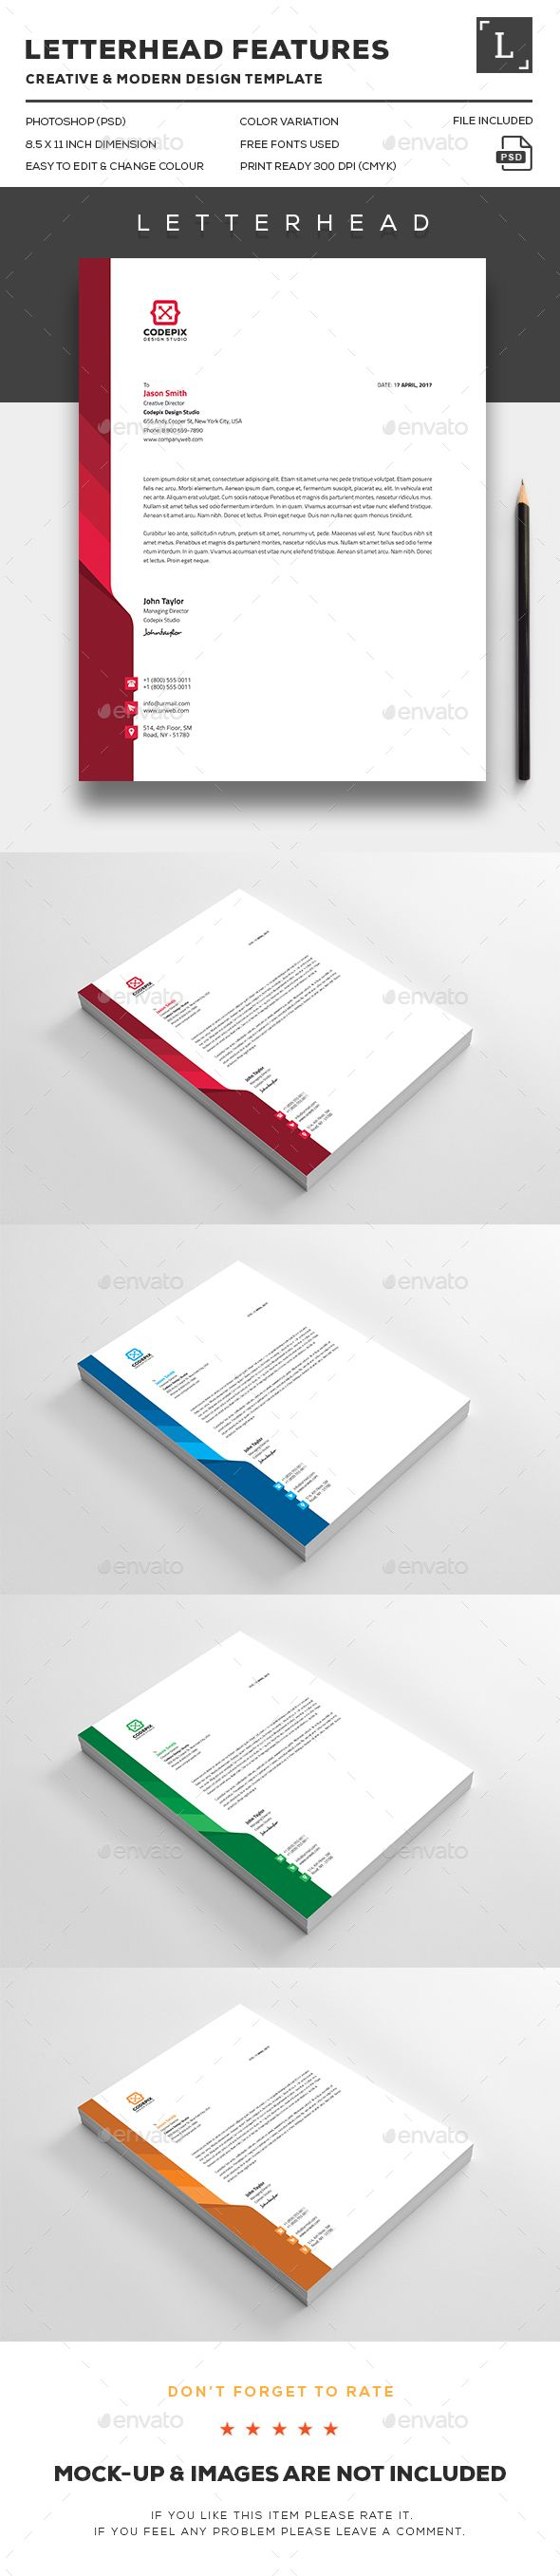 Letterheads Templates Free Download New 116 Best Letterhead Images On Pinterest  Letterhead Design .